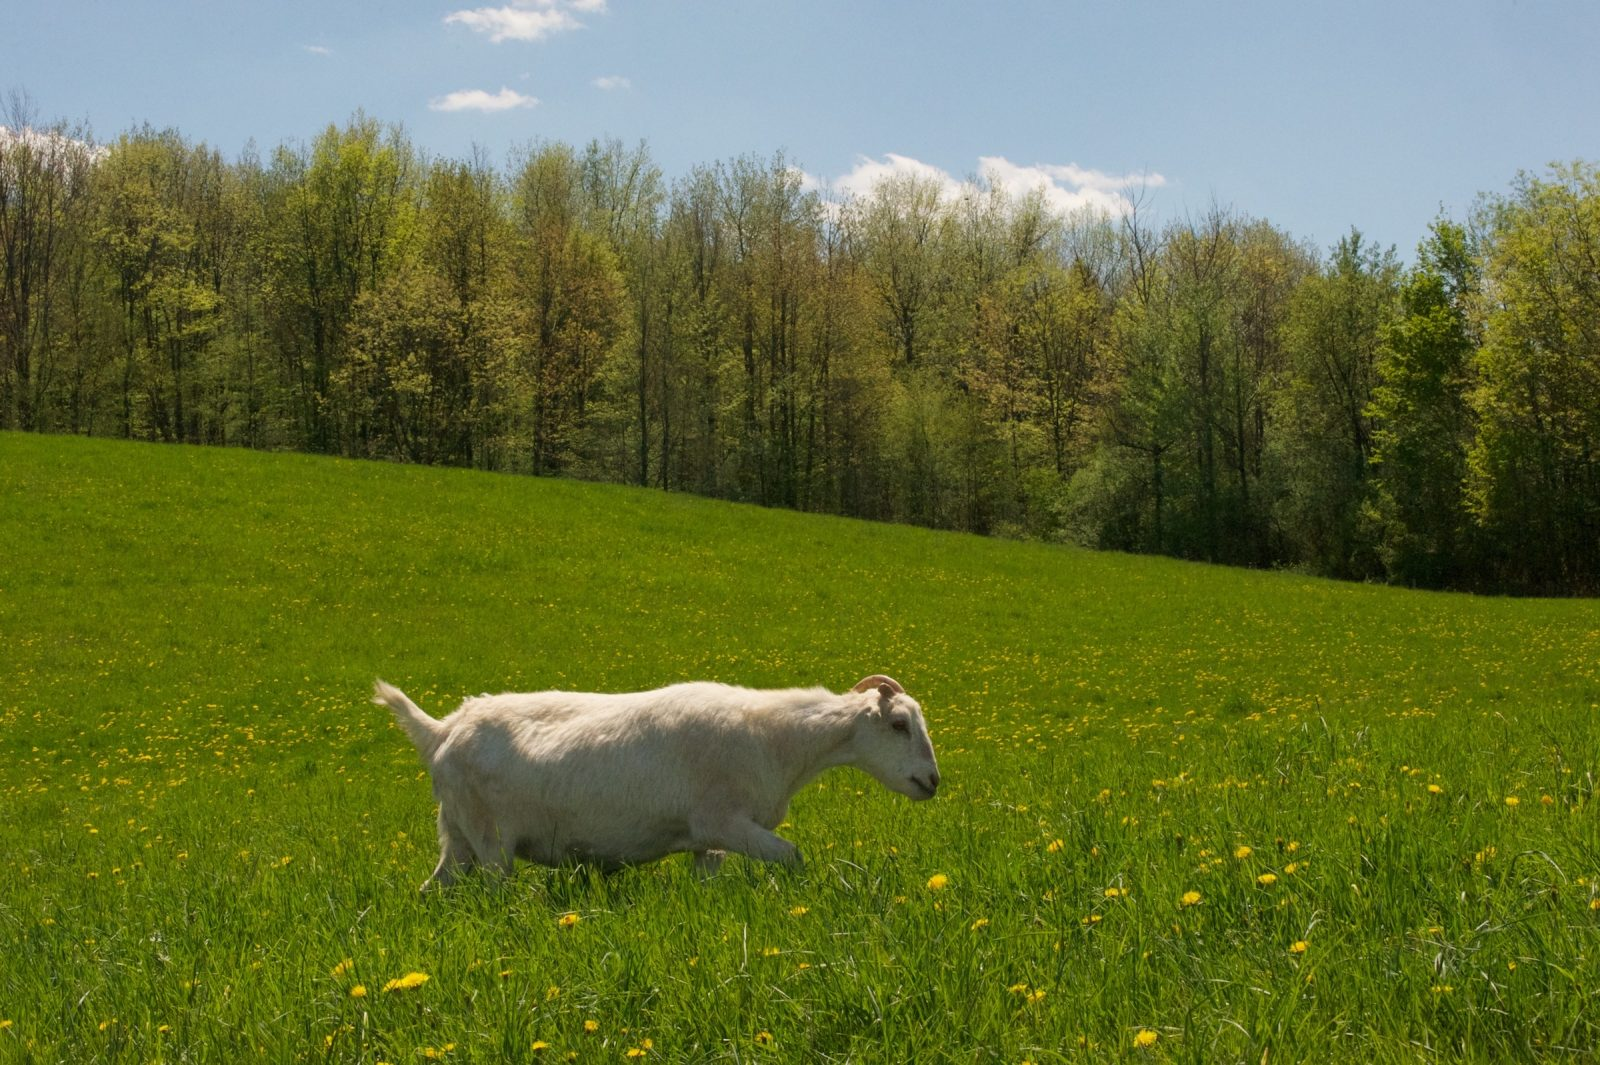 A goat named Dorothy in a field